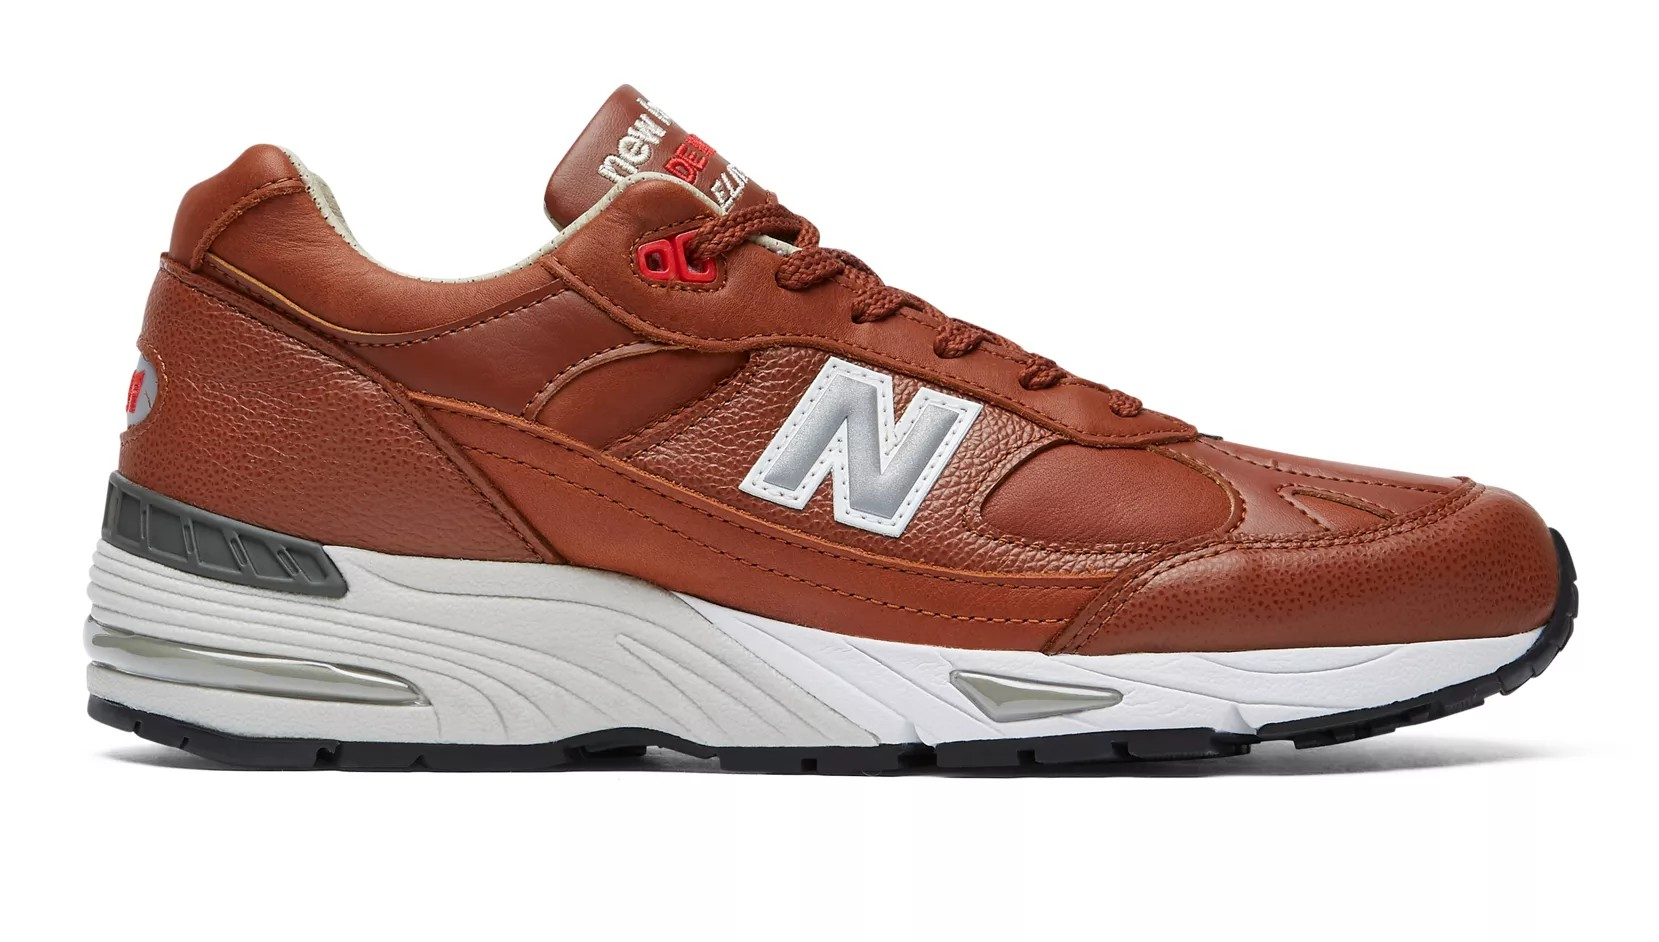 New Balance 991 Made in UK Elite Gent